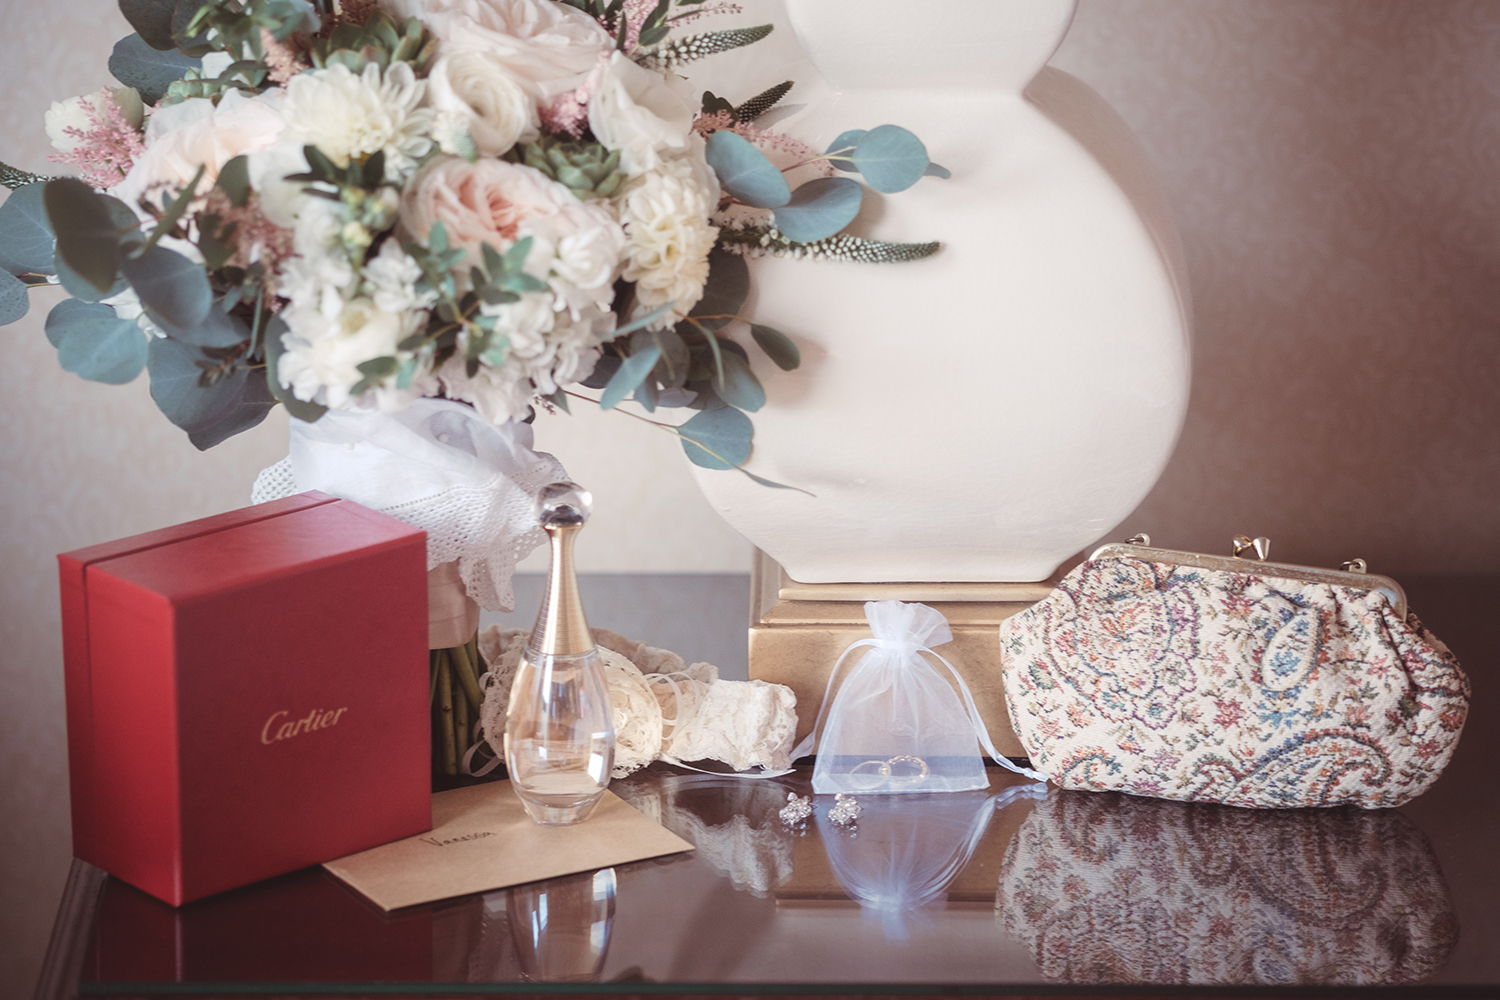 south-farms-wedding-candis-floral-creations-1